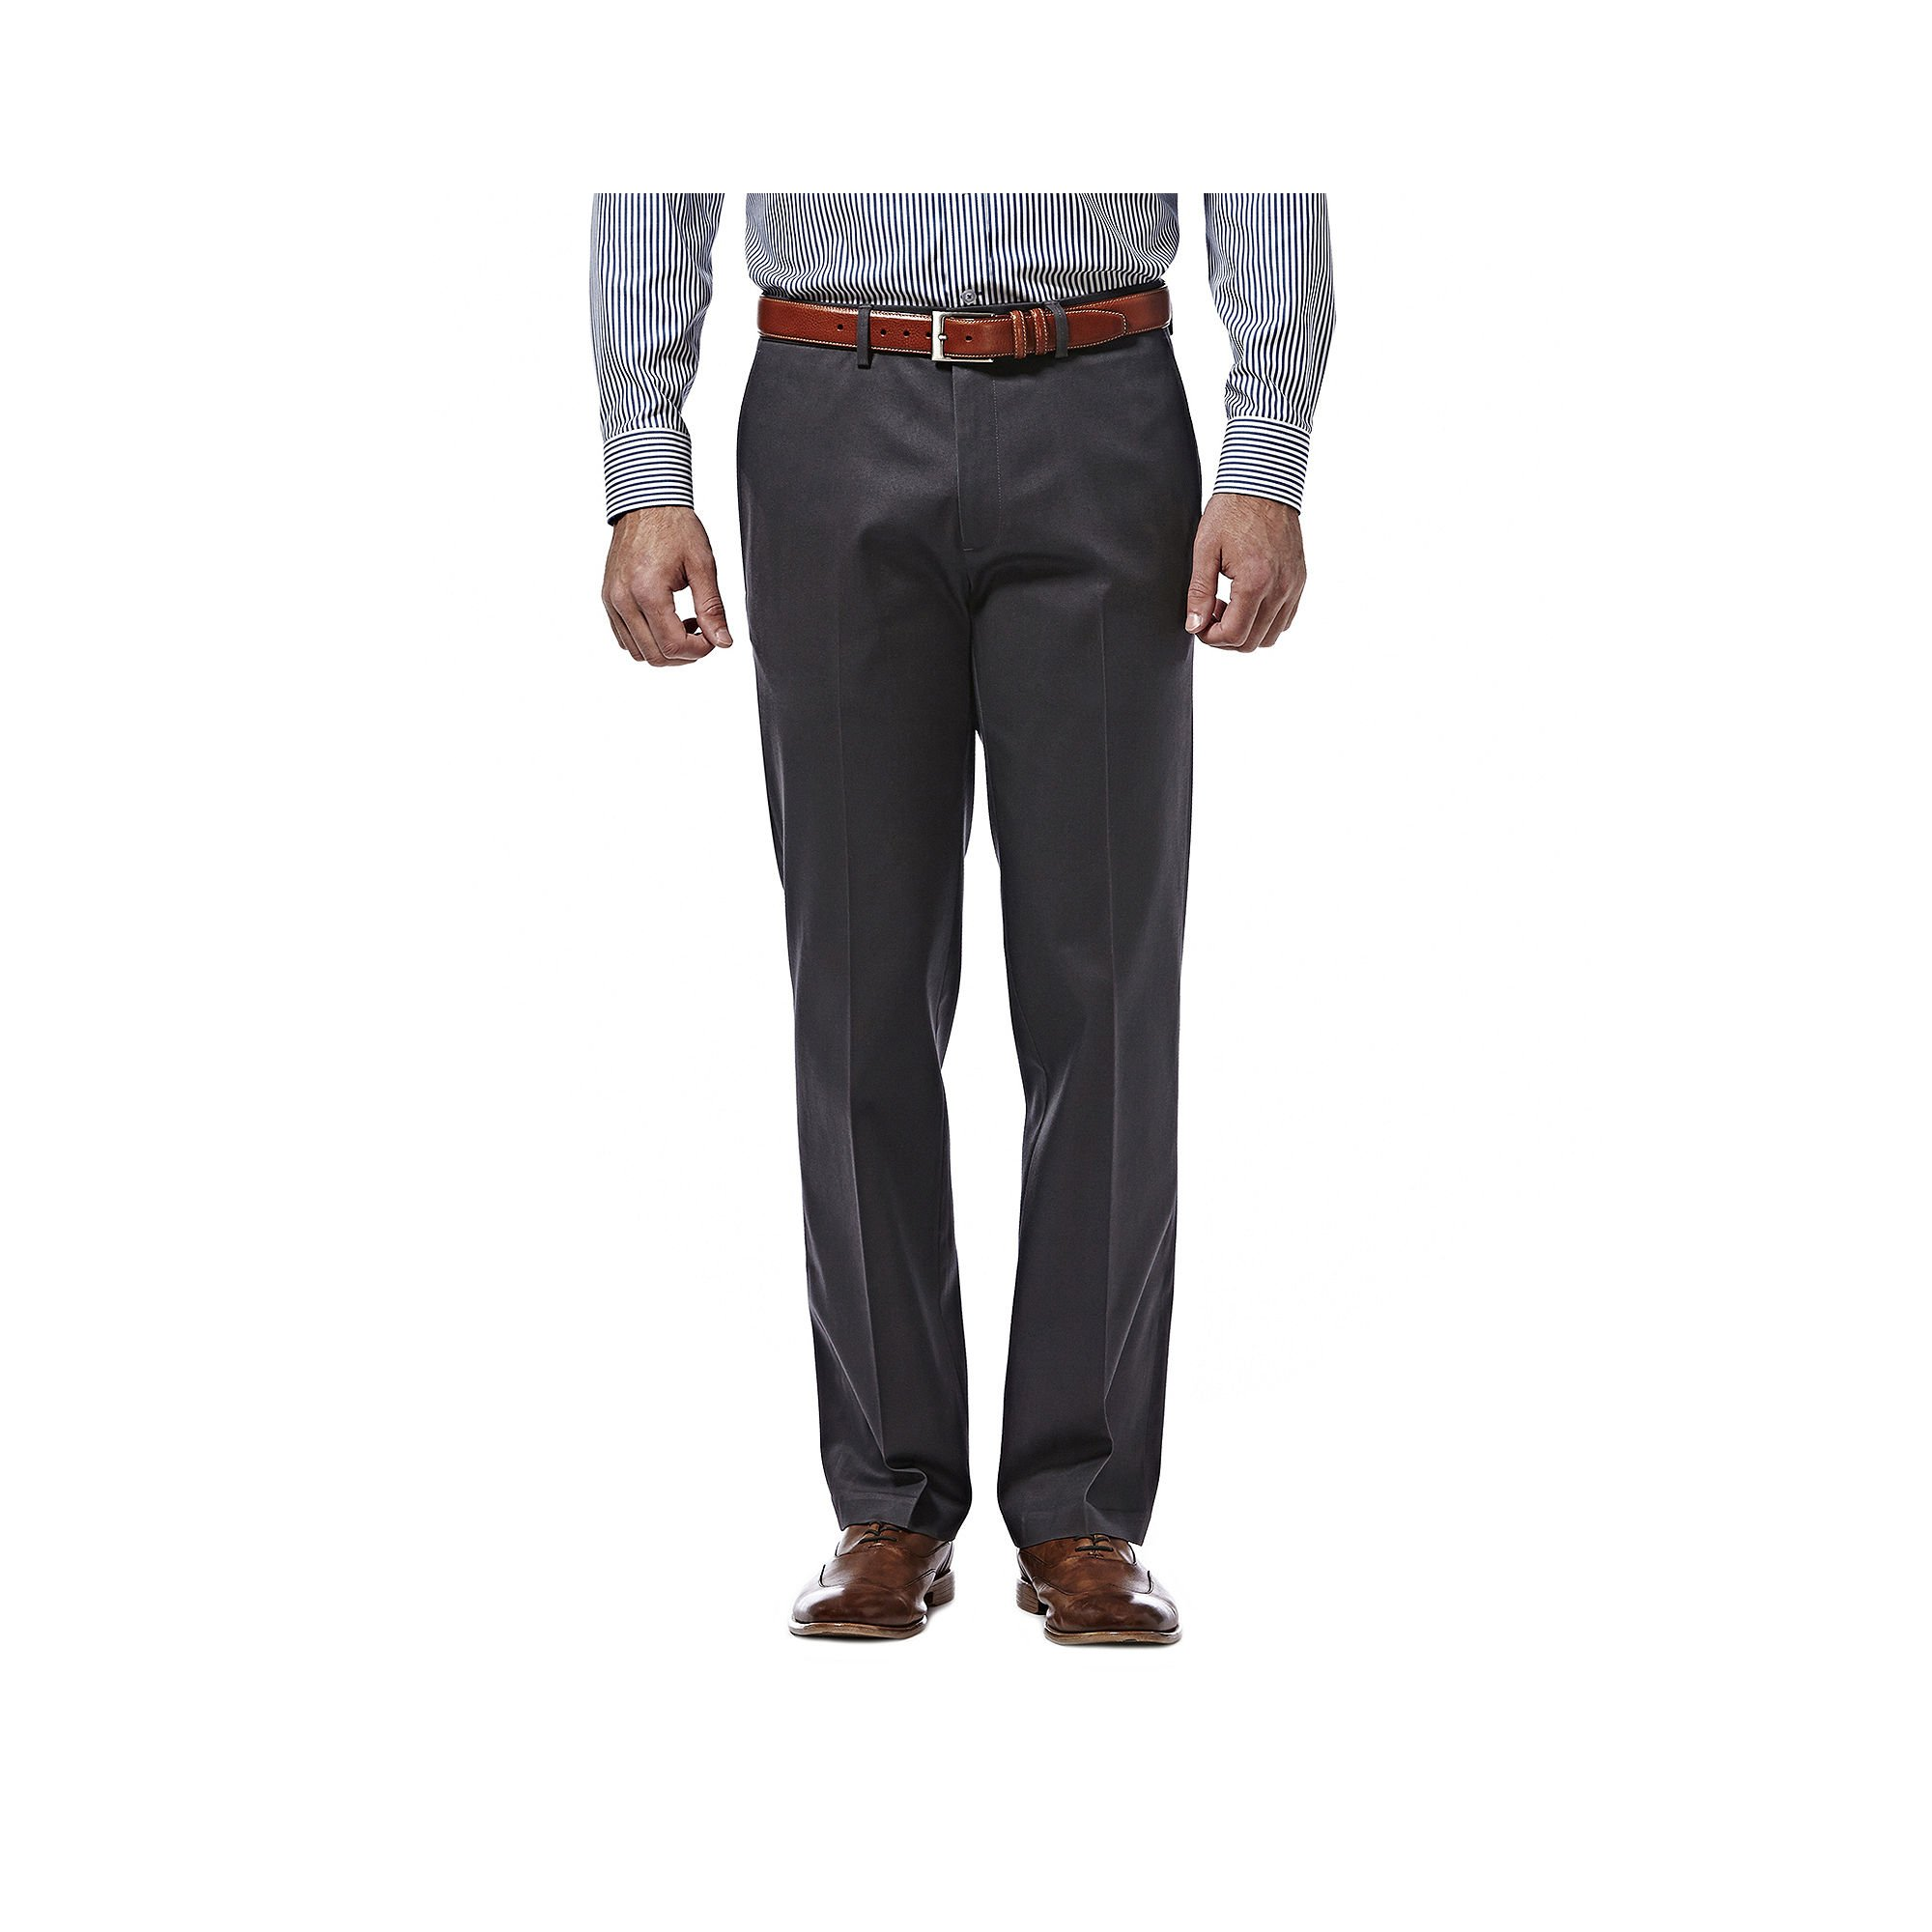 Haggar Premium No Iron Khaki Stretch Straight Fit Flat Front Pant Dark Gray 33x30